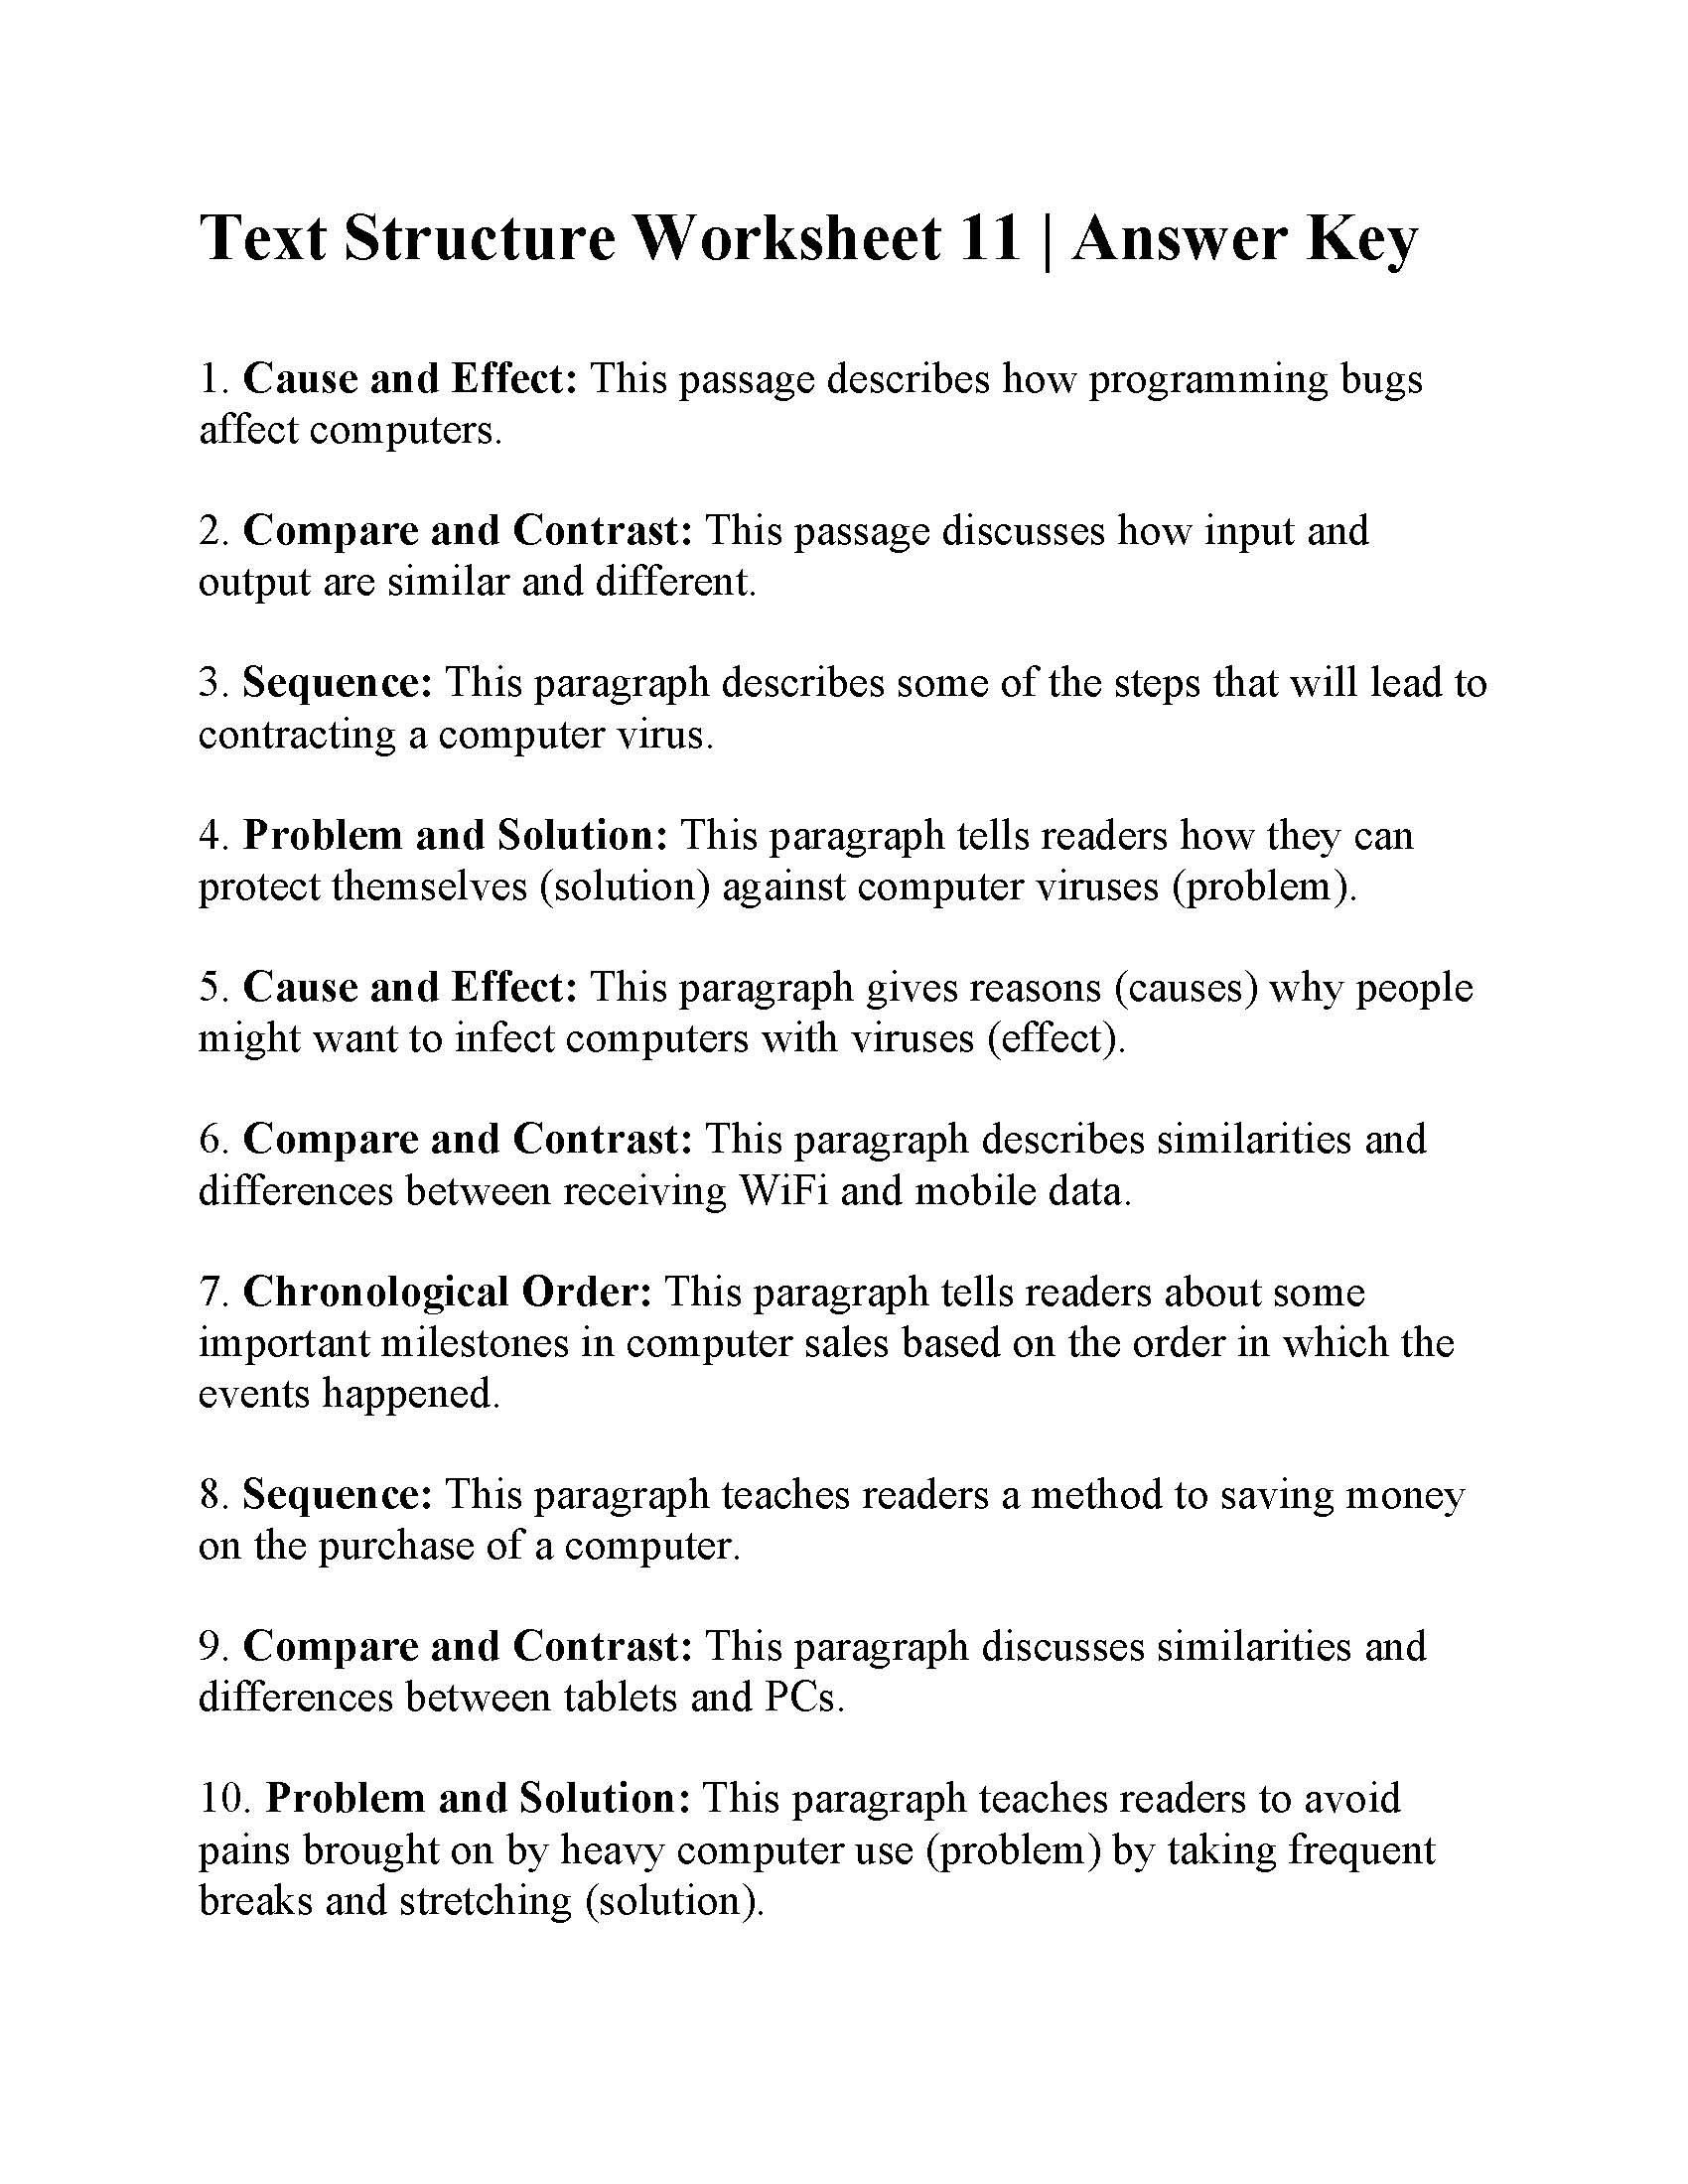 Text Structure 5th Grade Worksheets Text Structure Worksheet Answers Ereading Worksheets Kumon